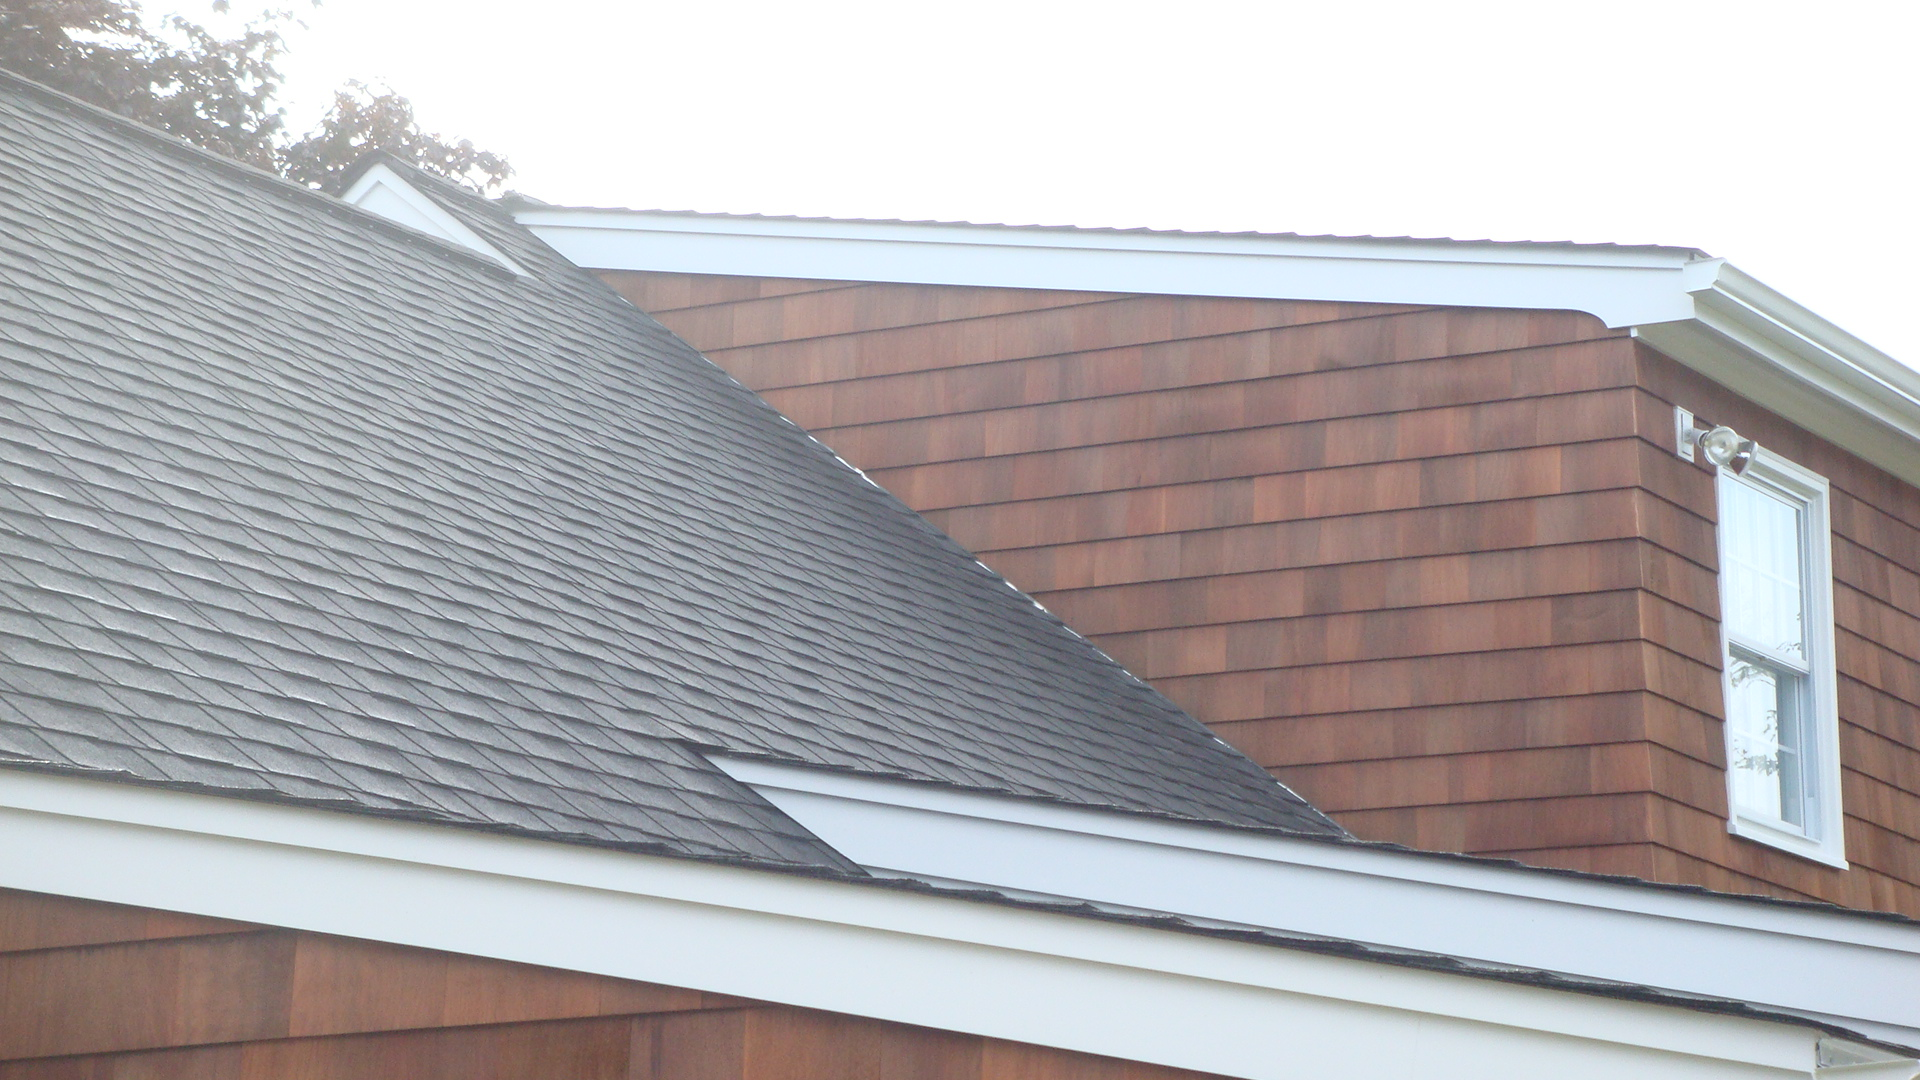 Siding Storm Damage Repair Siding Hail Damage Repair